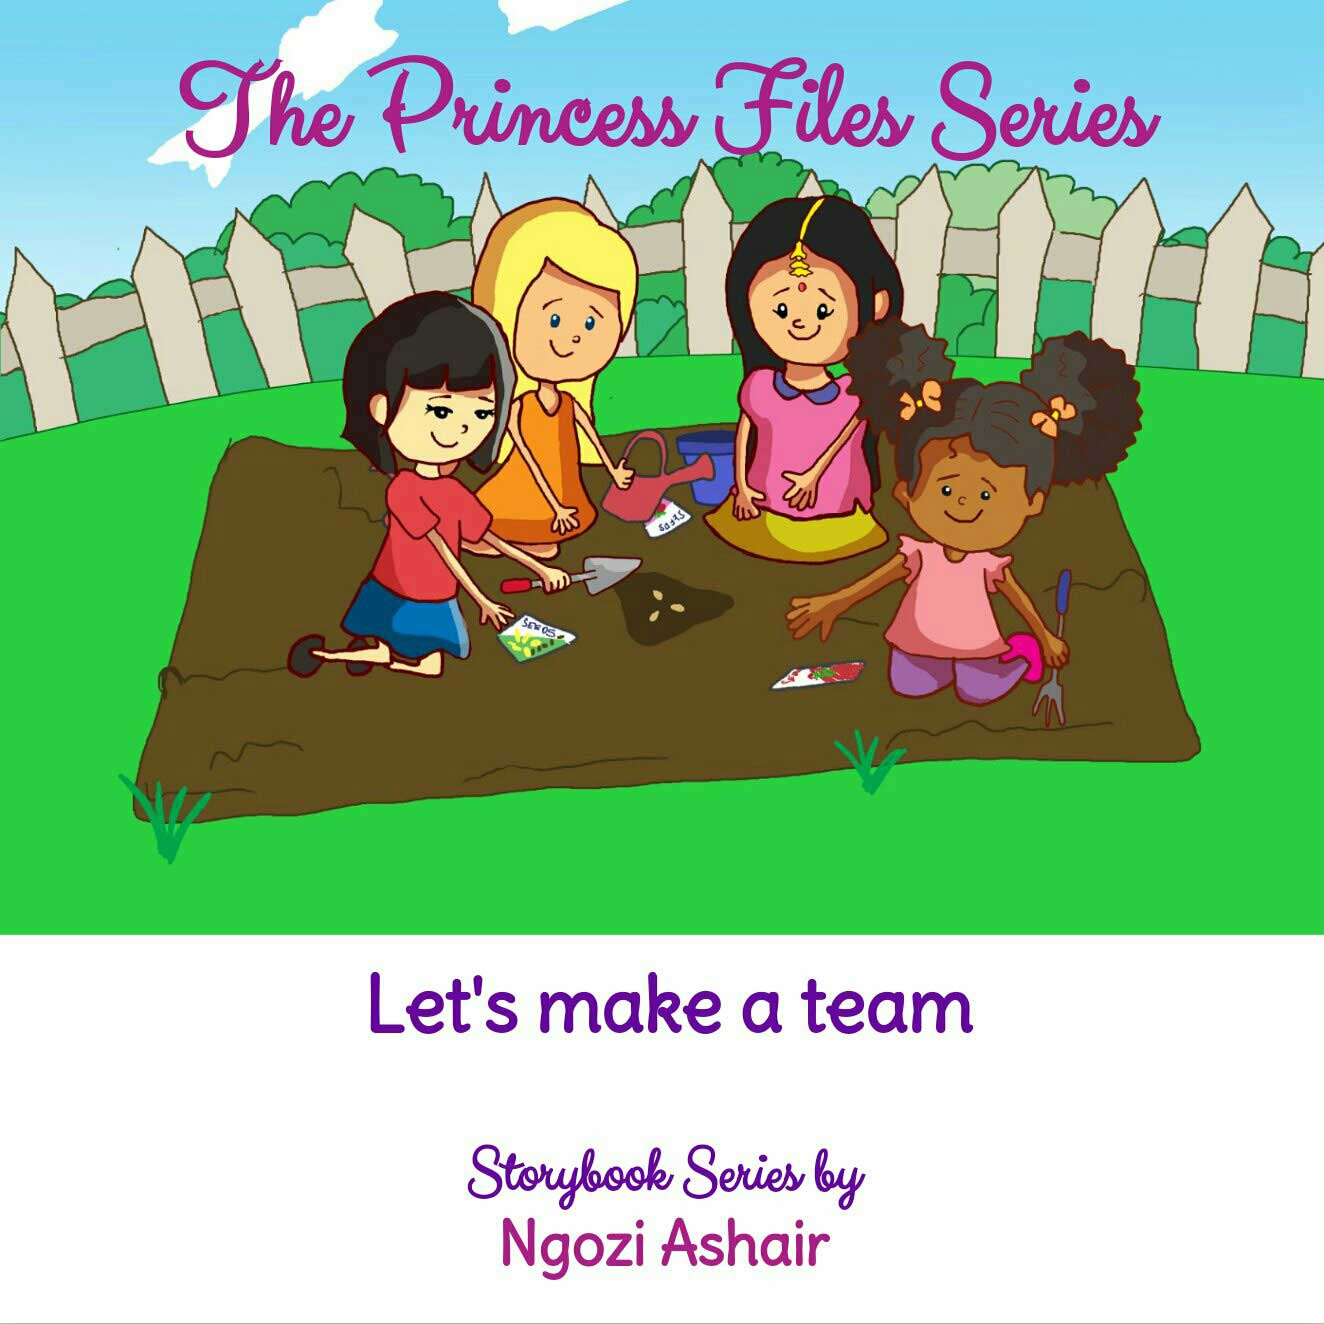 The Princess Files Series Teamwork page 1